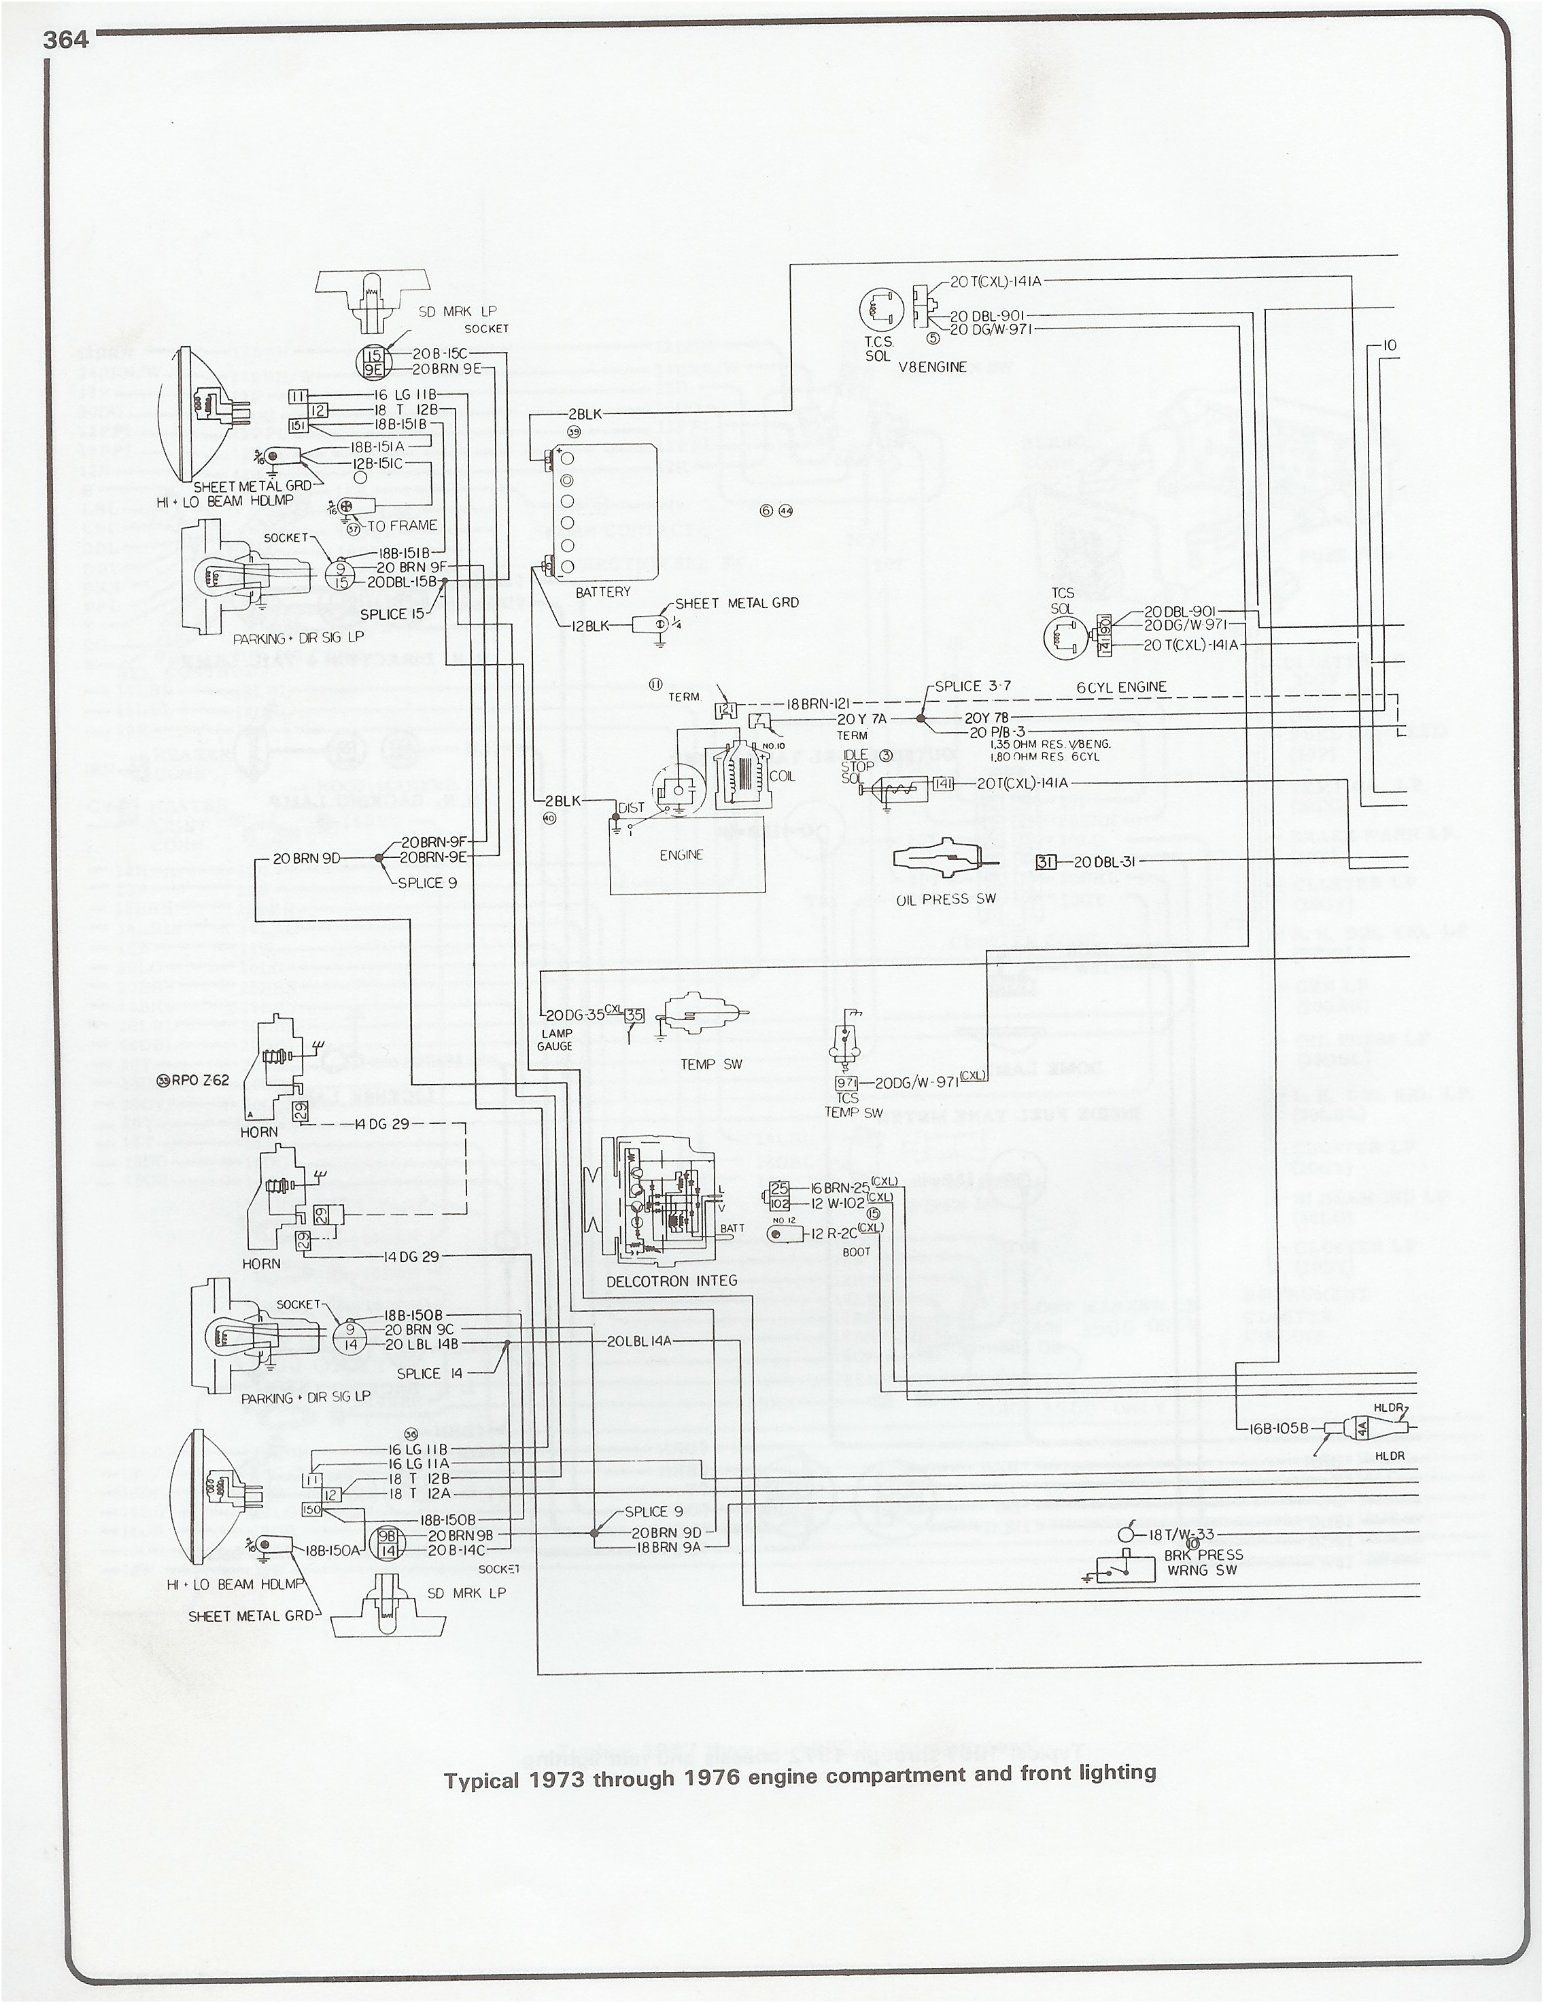 75 Chevy Wiring Diagram | Wiring Diagram on